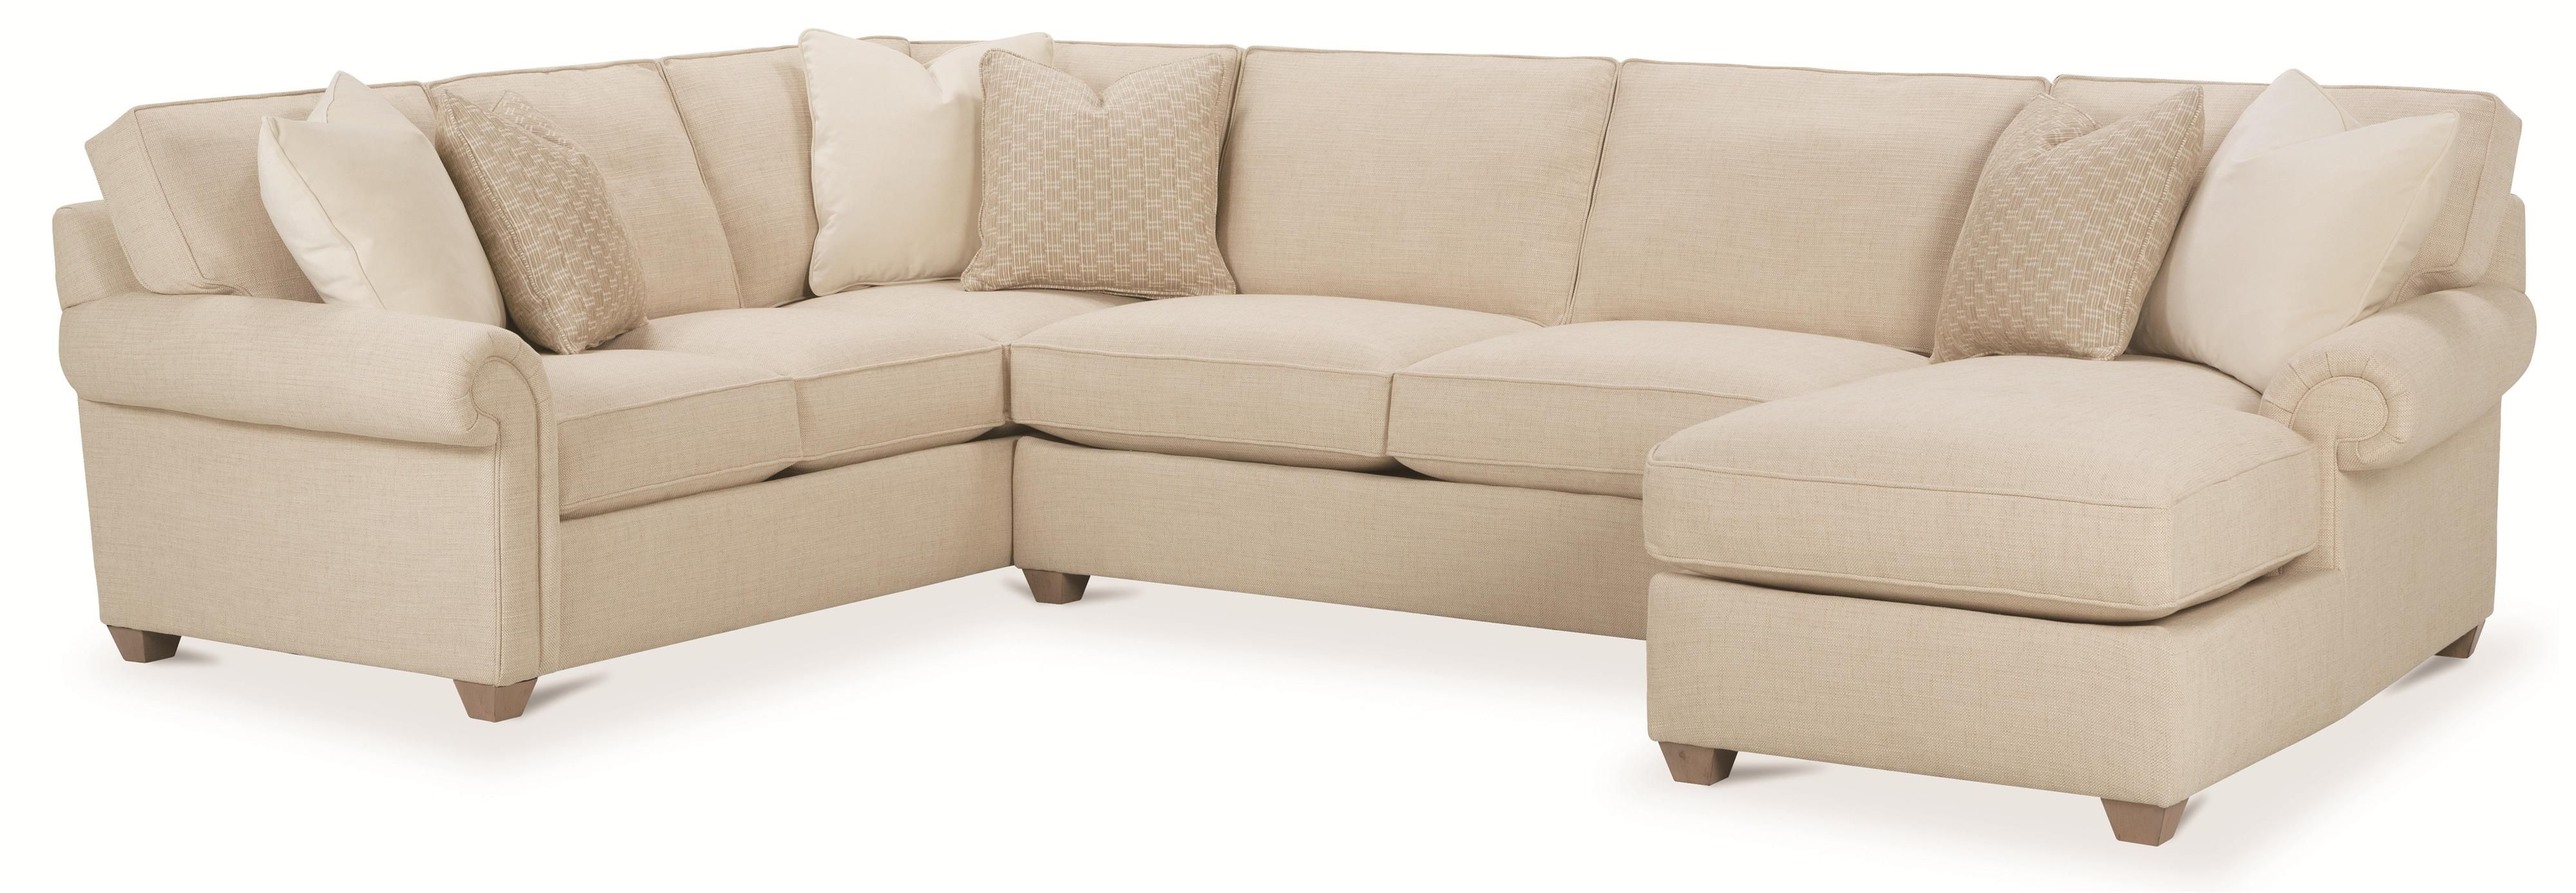 Morgan Traditional Three Piece Sectional Sofa by Rowe